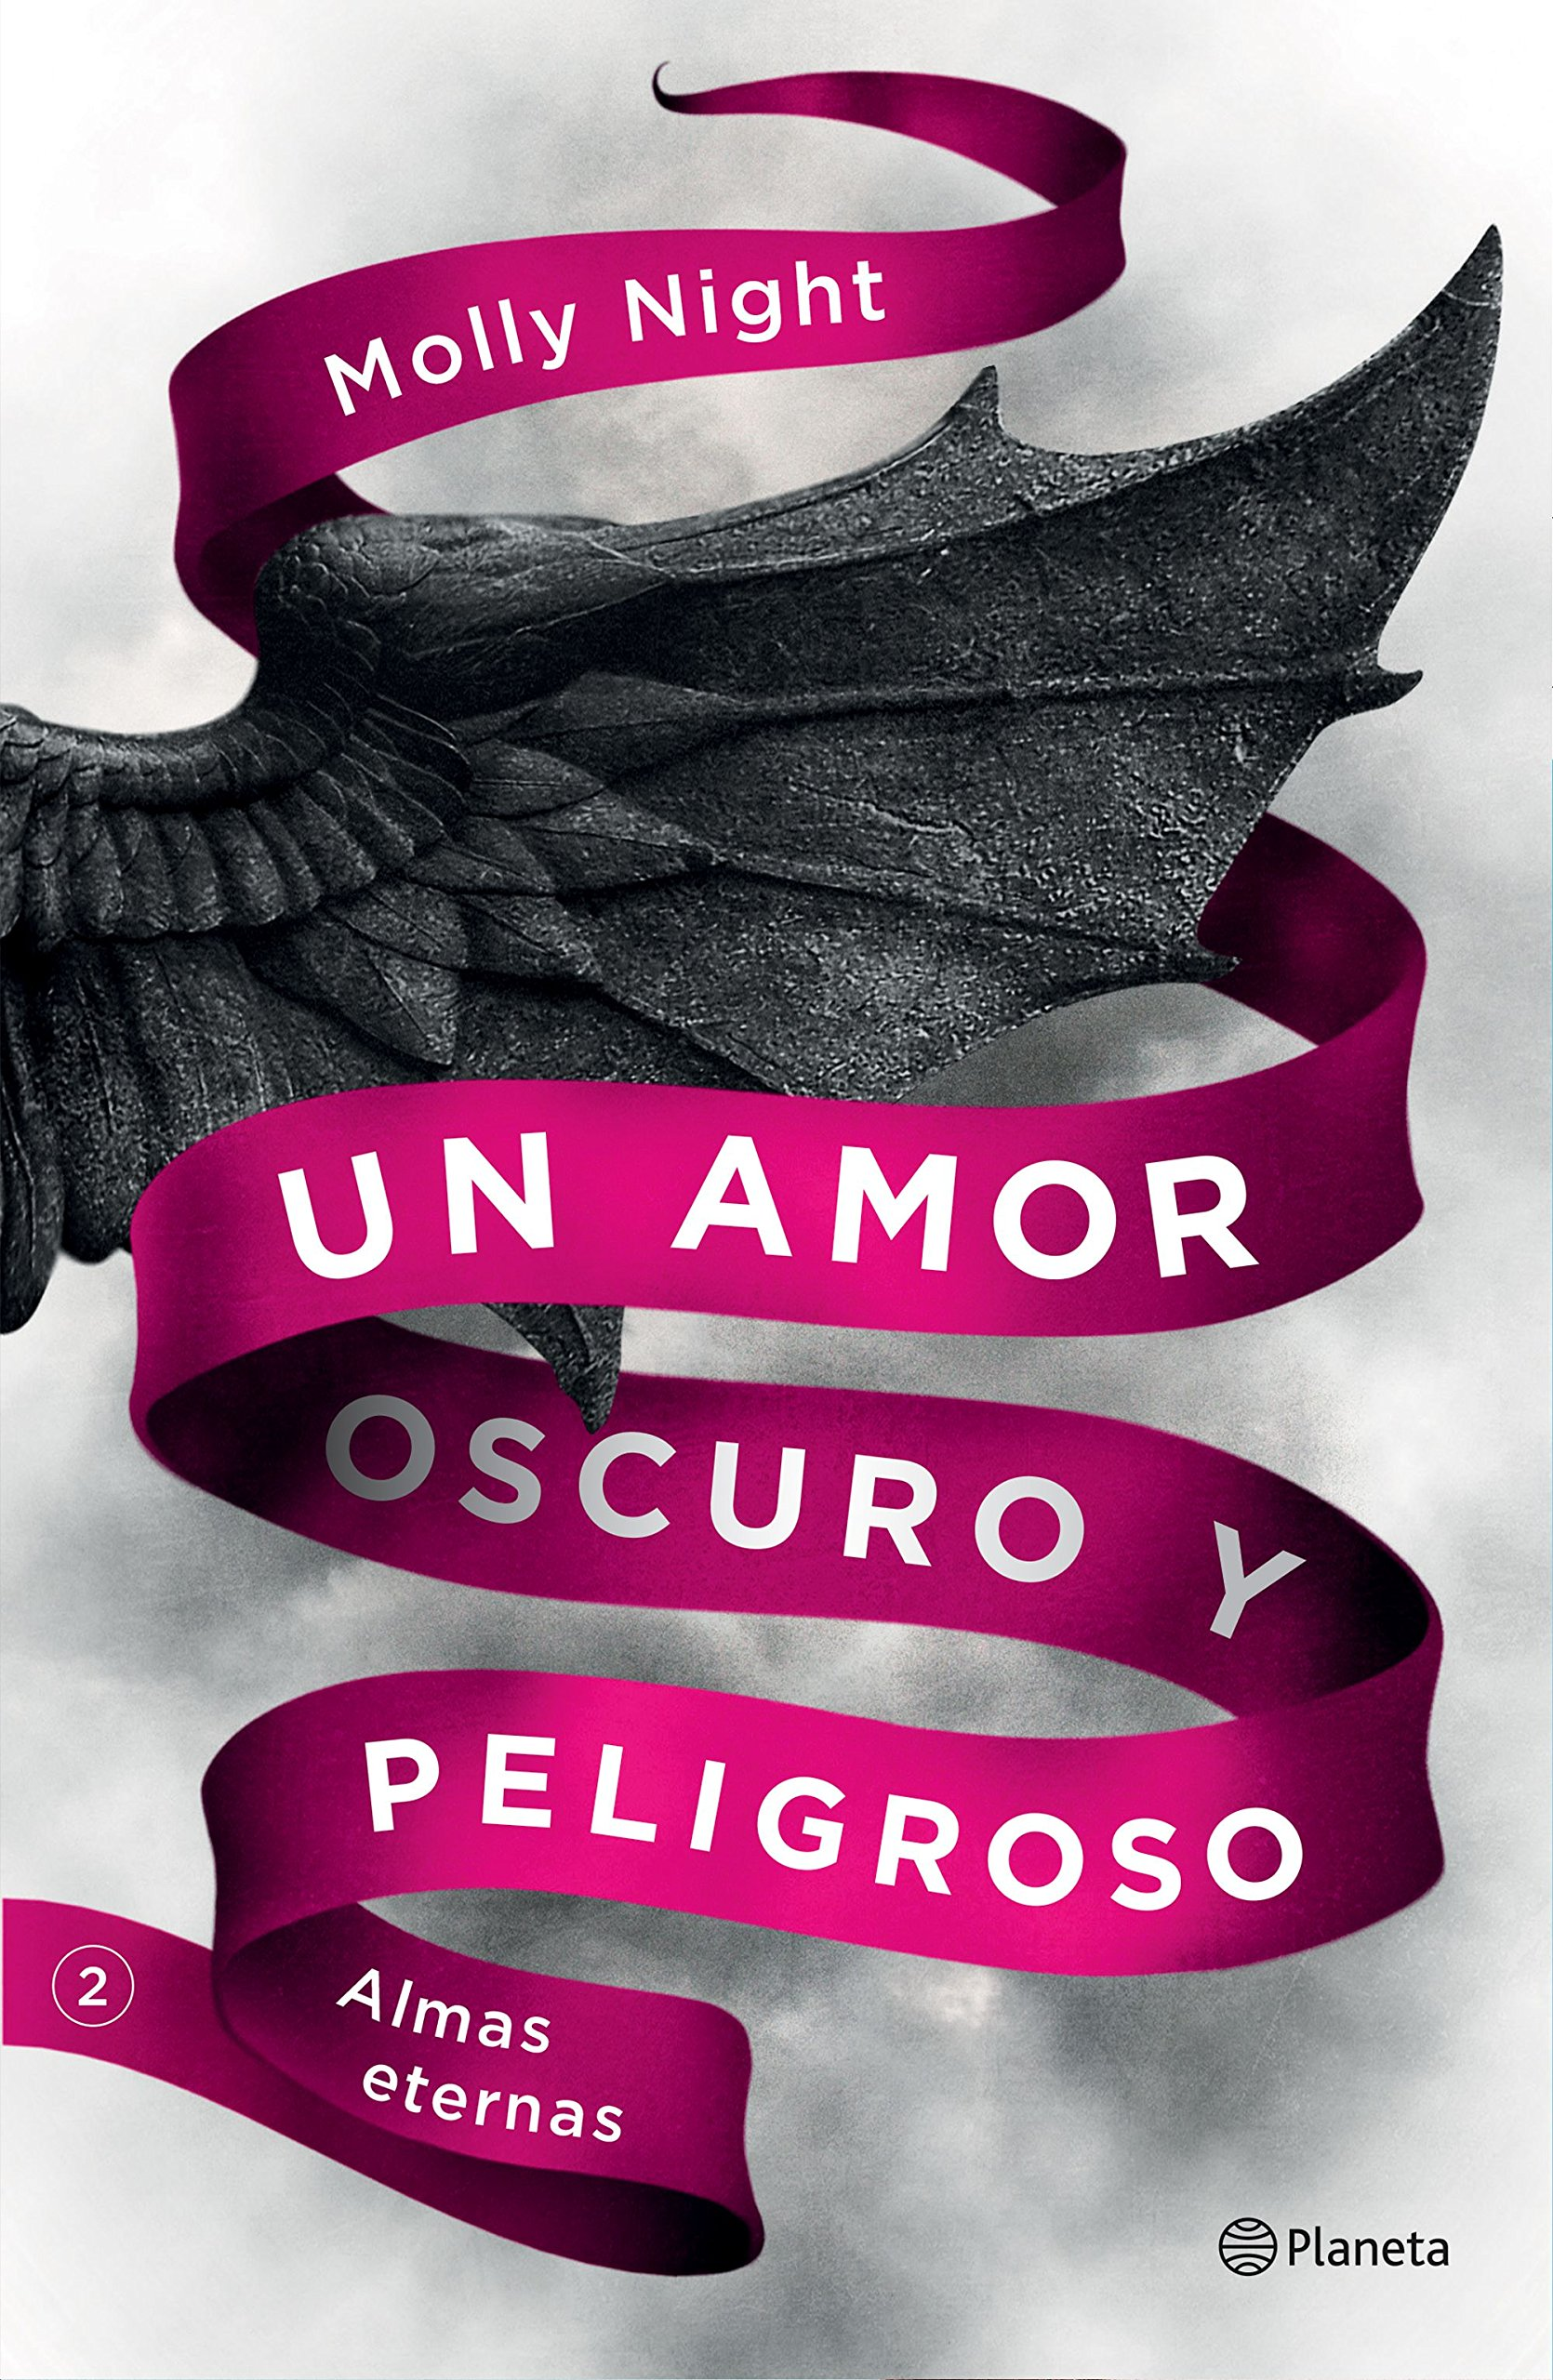 Un Amor Oscuro y Peligroso 2. Almas Eternas Un amor oscuro y peligroso / Dark and Dangerous Love: Amazon.es: Molly Night: Libros